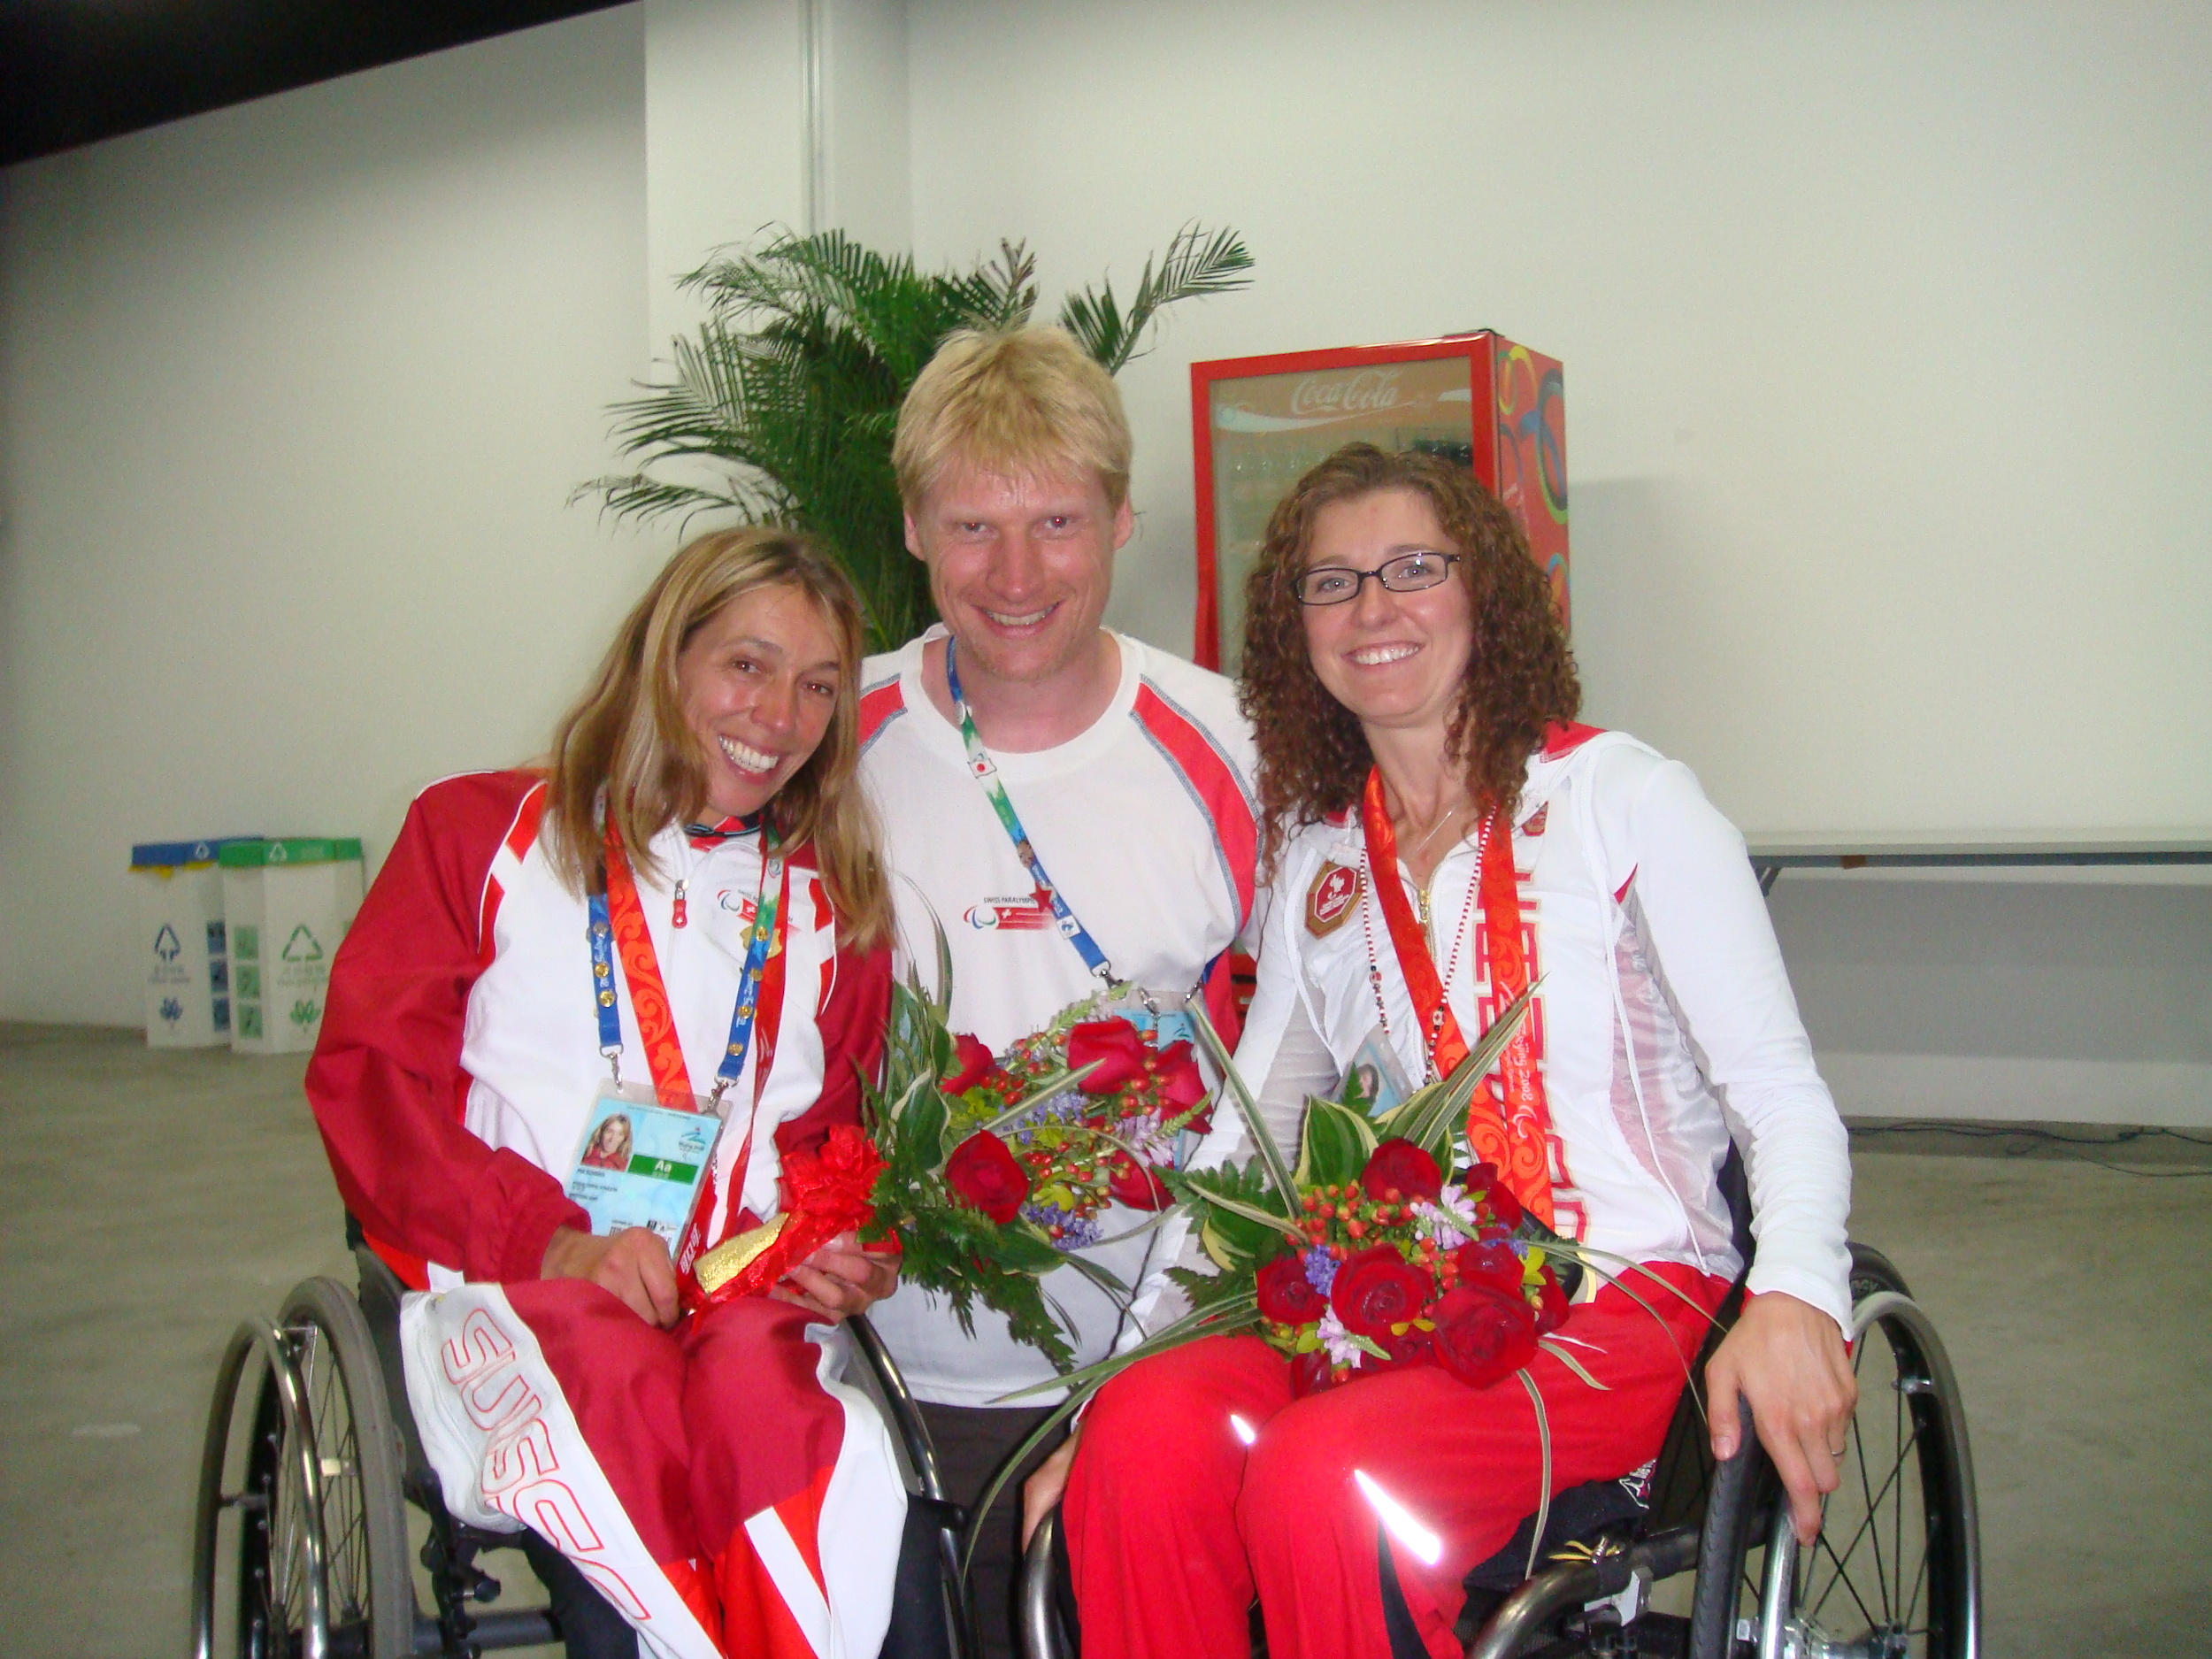 With Pia Schmidt Silver Medalist